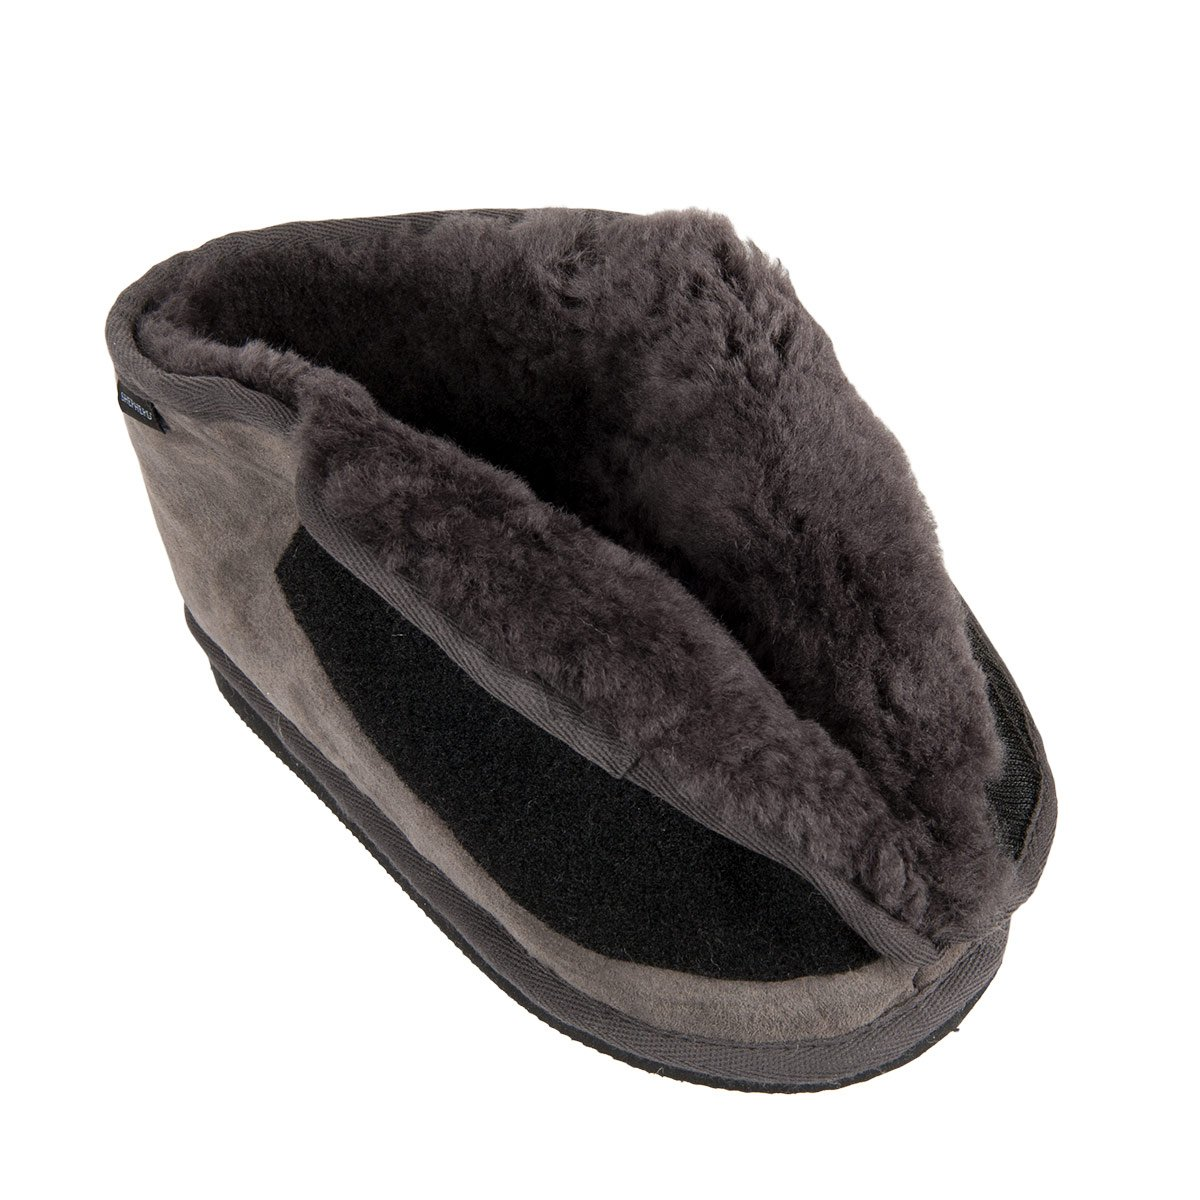 e8babddb7 Sheepskin slippers with extra wide entrance by Denise Shepherd